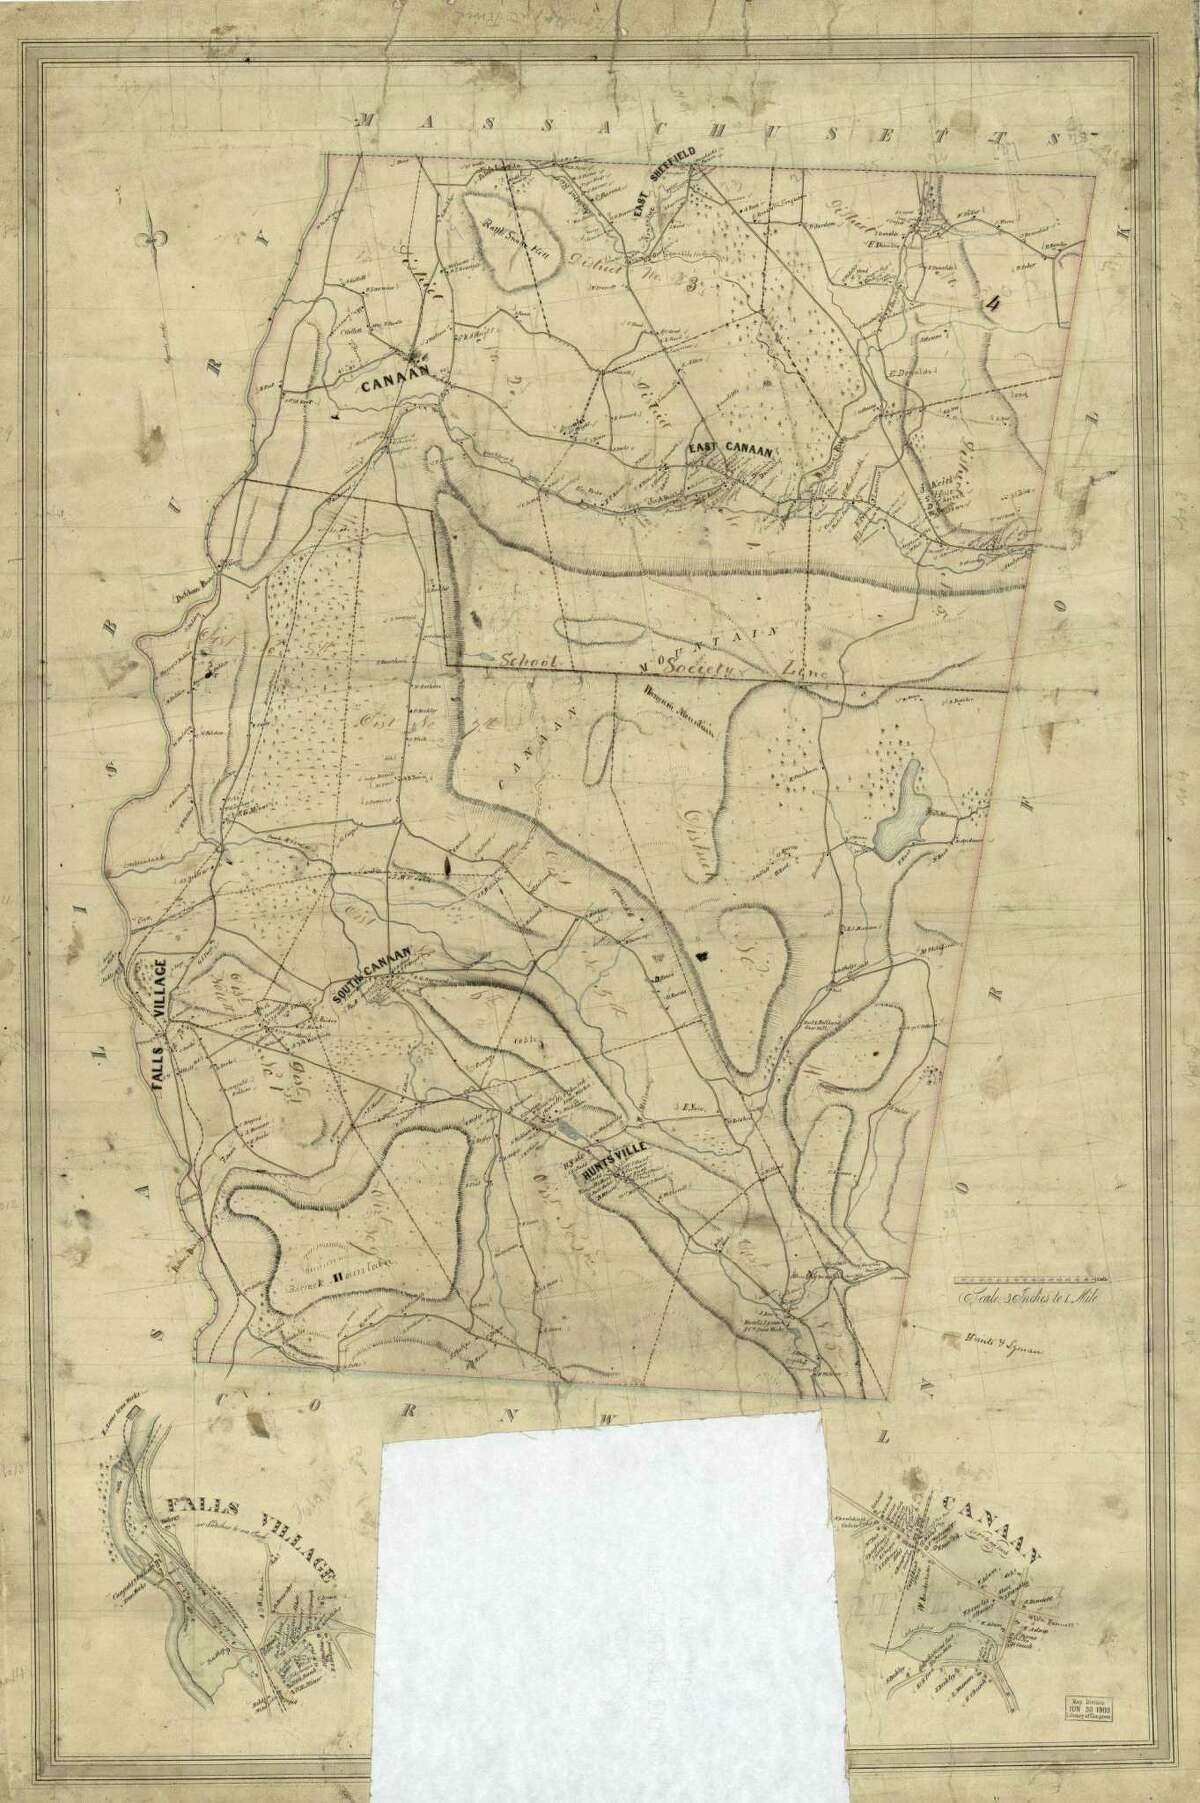 A map of the town of Canaan from 1853